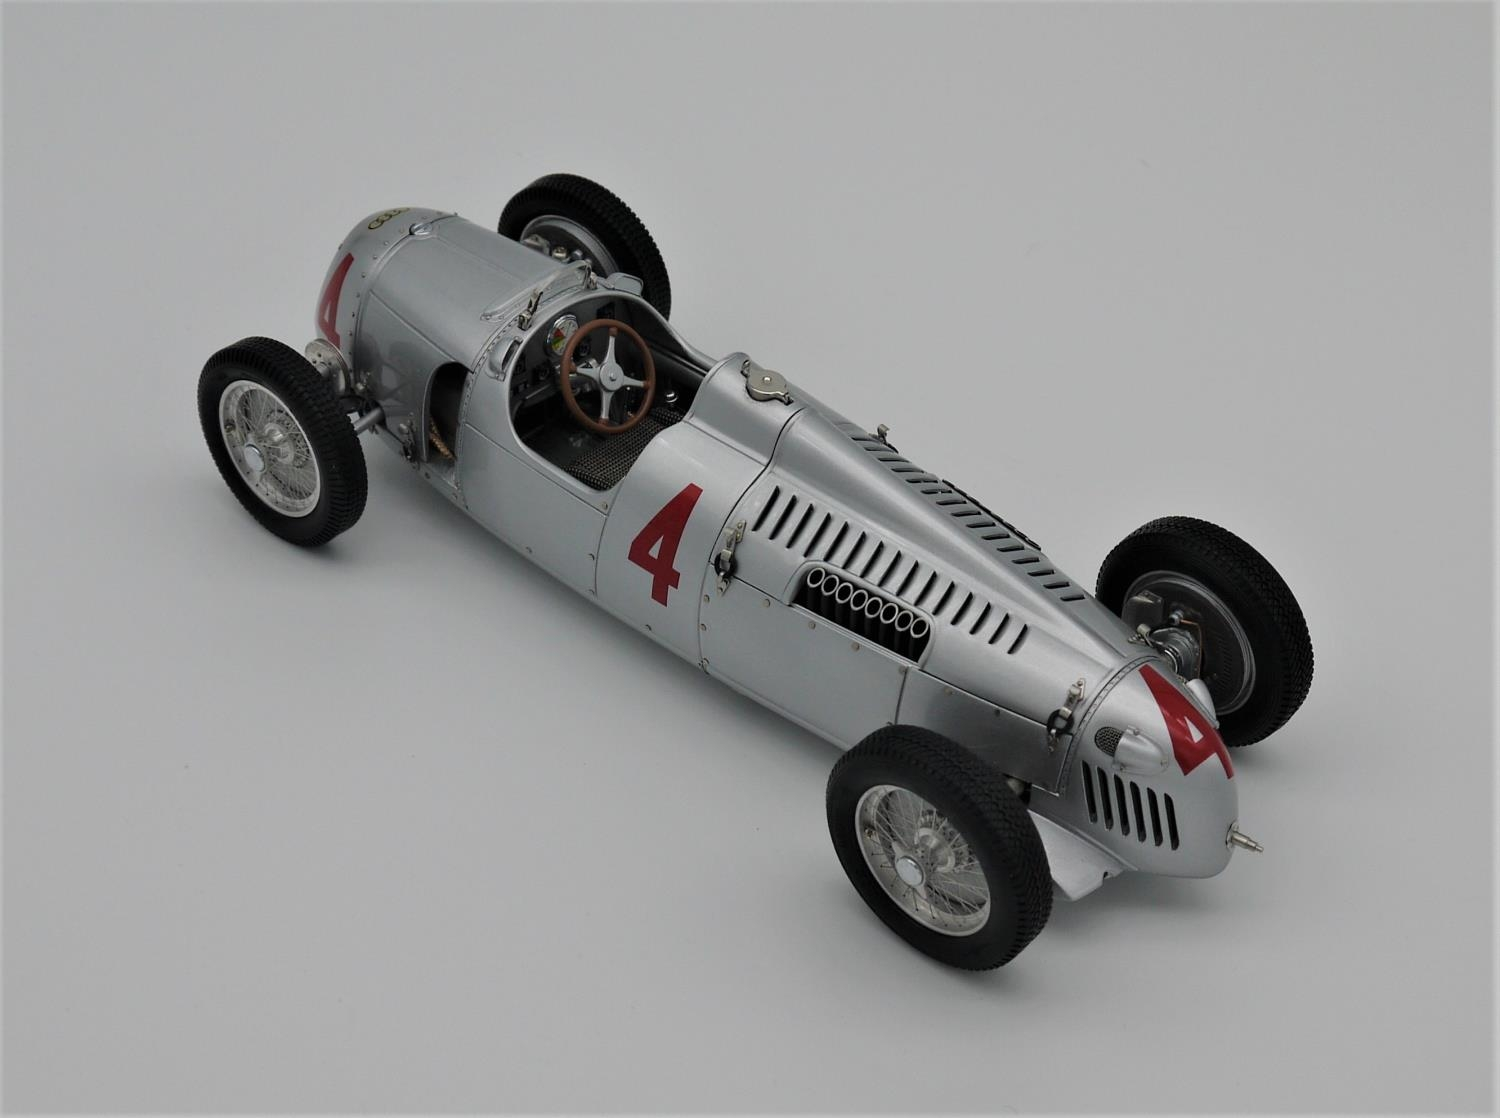 CMC MODELS 1:18 SCALE MODEL OF THE 1936 AUTO UNION TYP C NUMBER 4 (reference M073) as driven to - Image 2 of 2